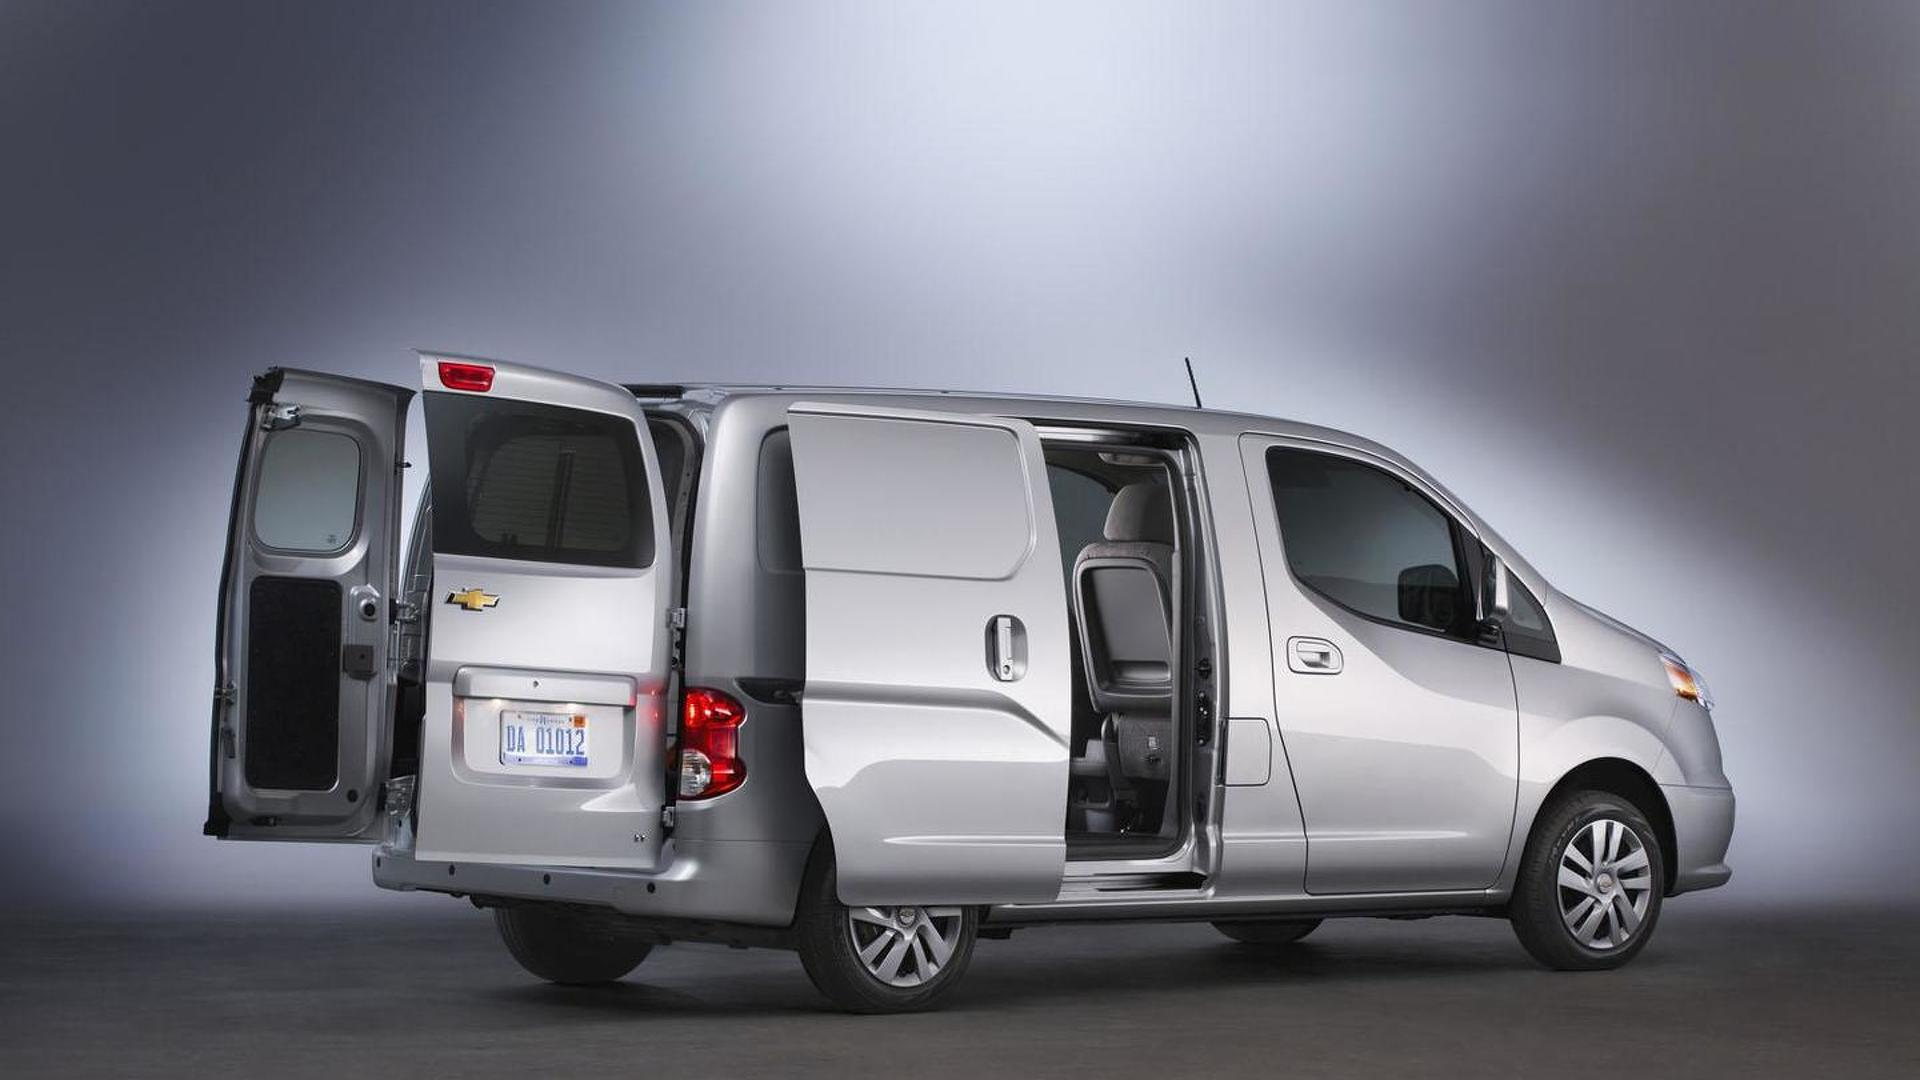 2015 Chevrolet City Express unveiled, features a 2.0-liter four-cylinder engine